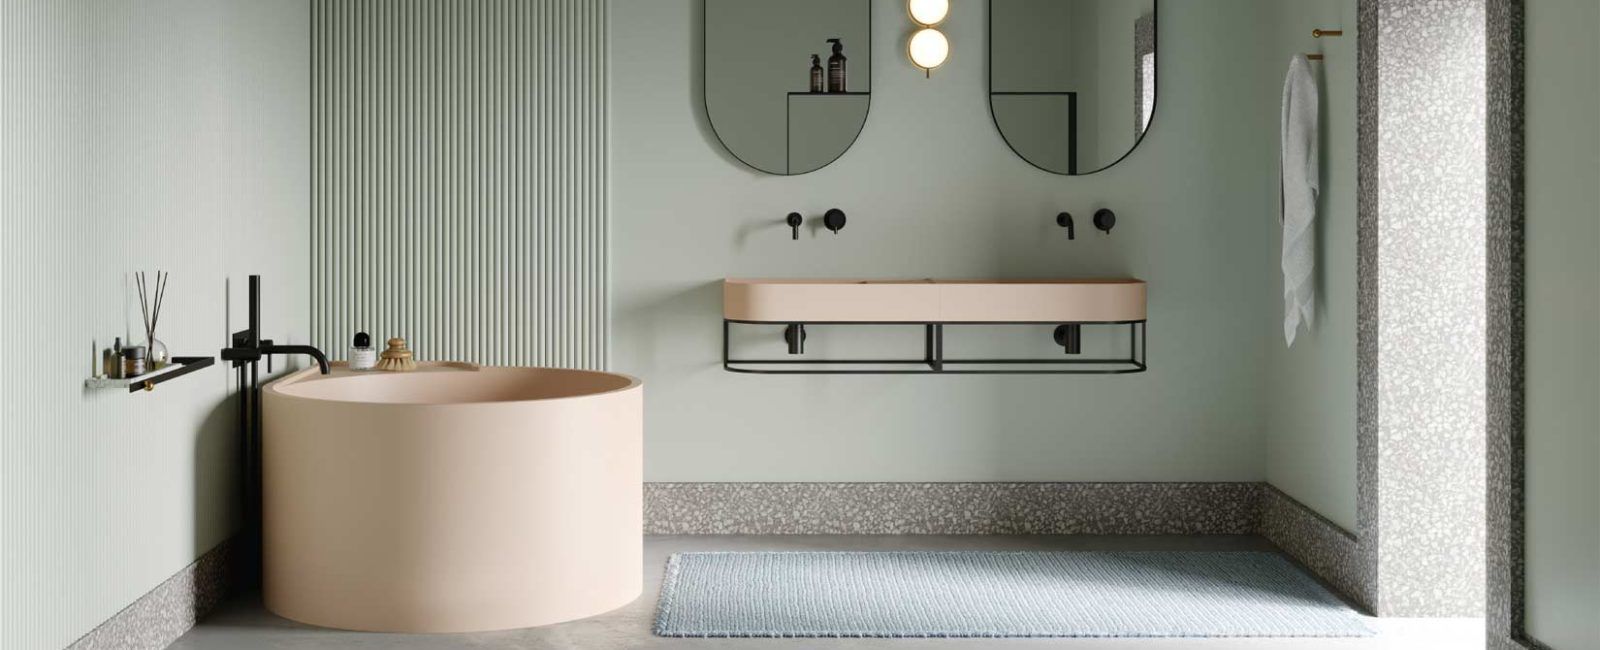 Bathromm trend 2020: colored washbasins and sanitary ware